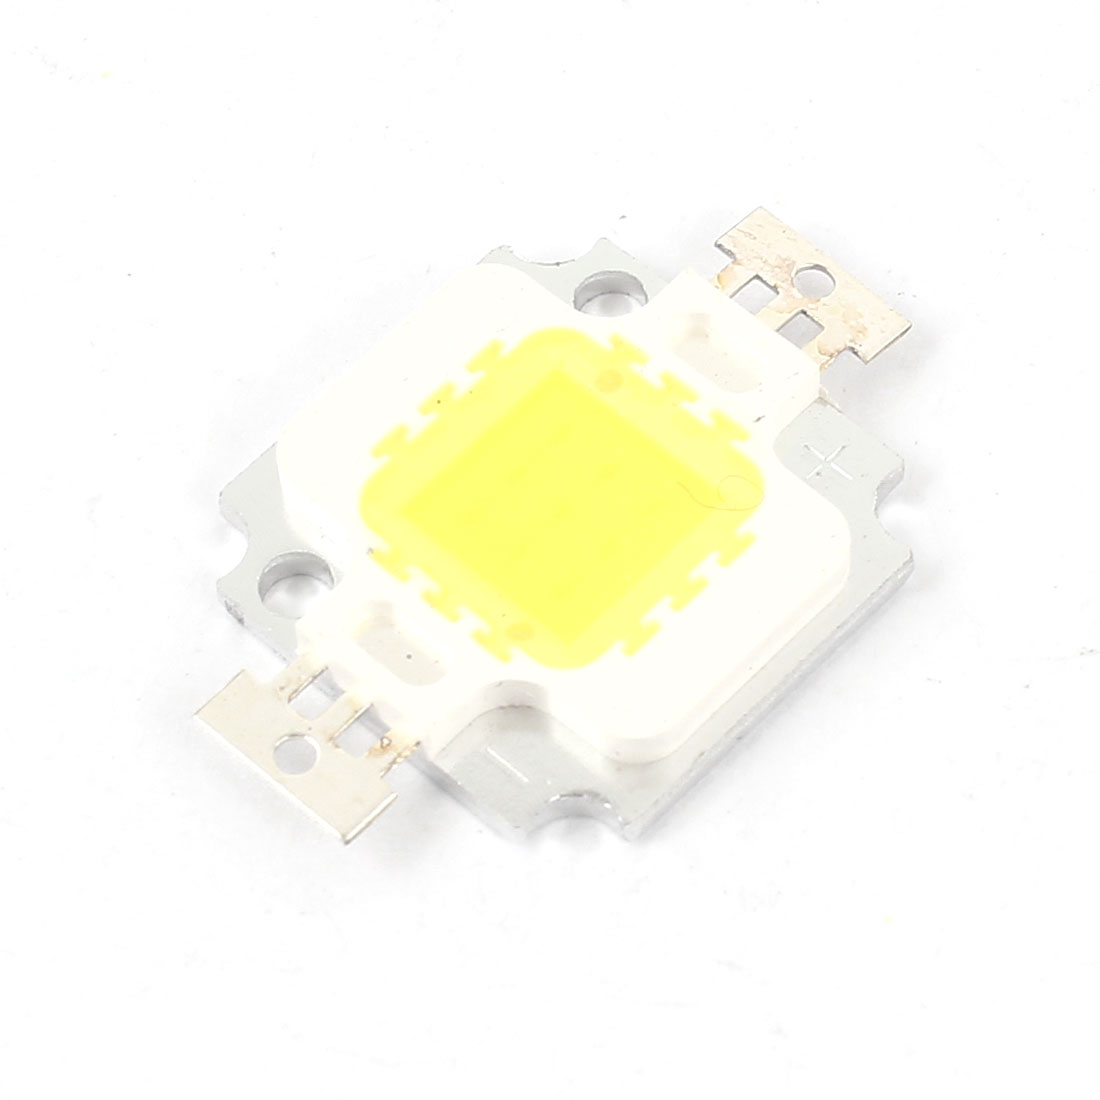 32-34V 150mA 850-900LM 1 x 10W White Lamp Light LED Emitter Metal Plate